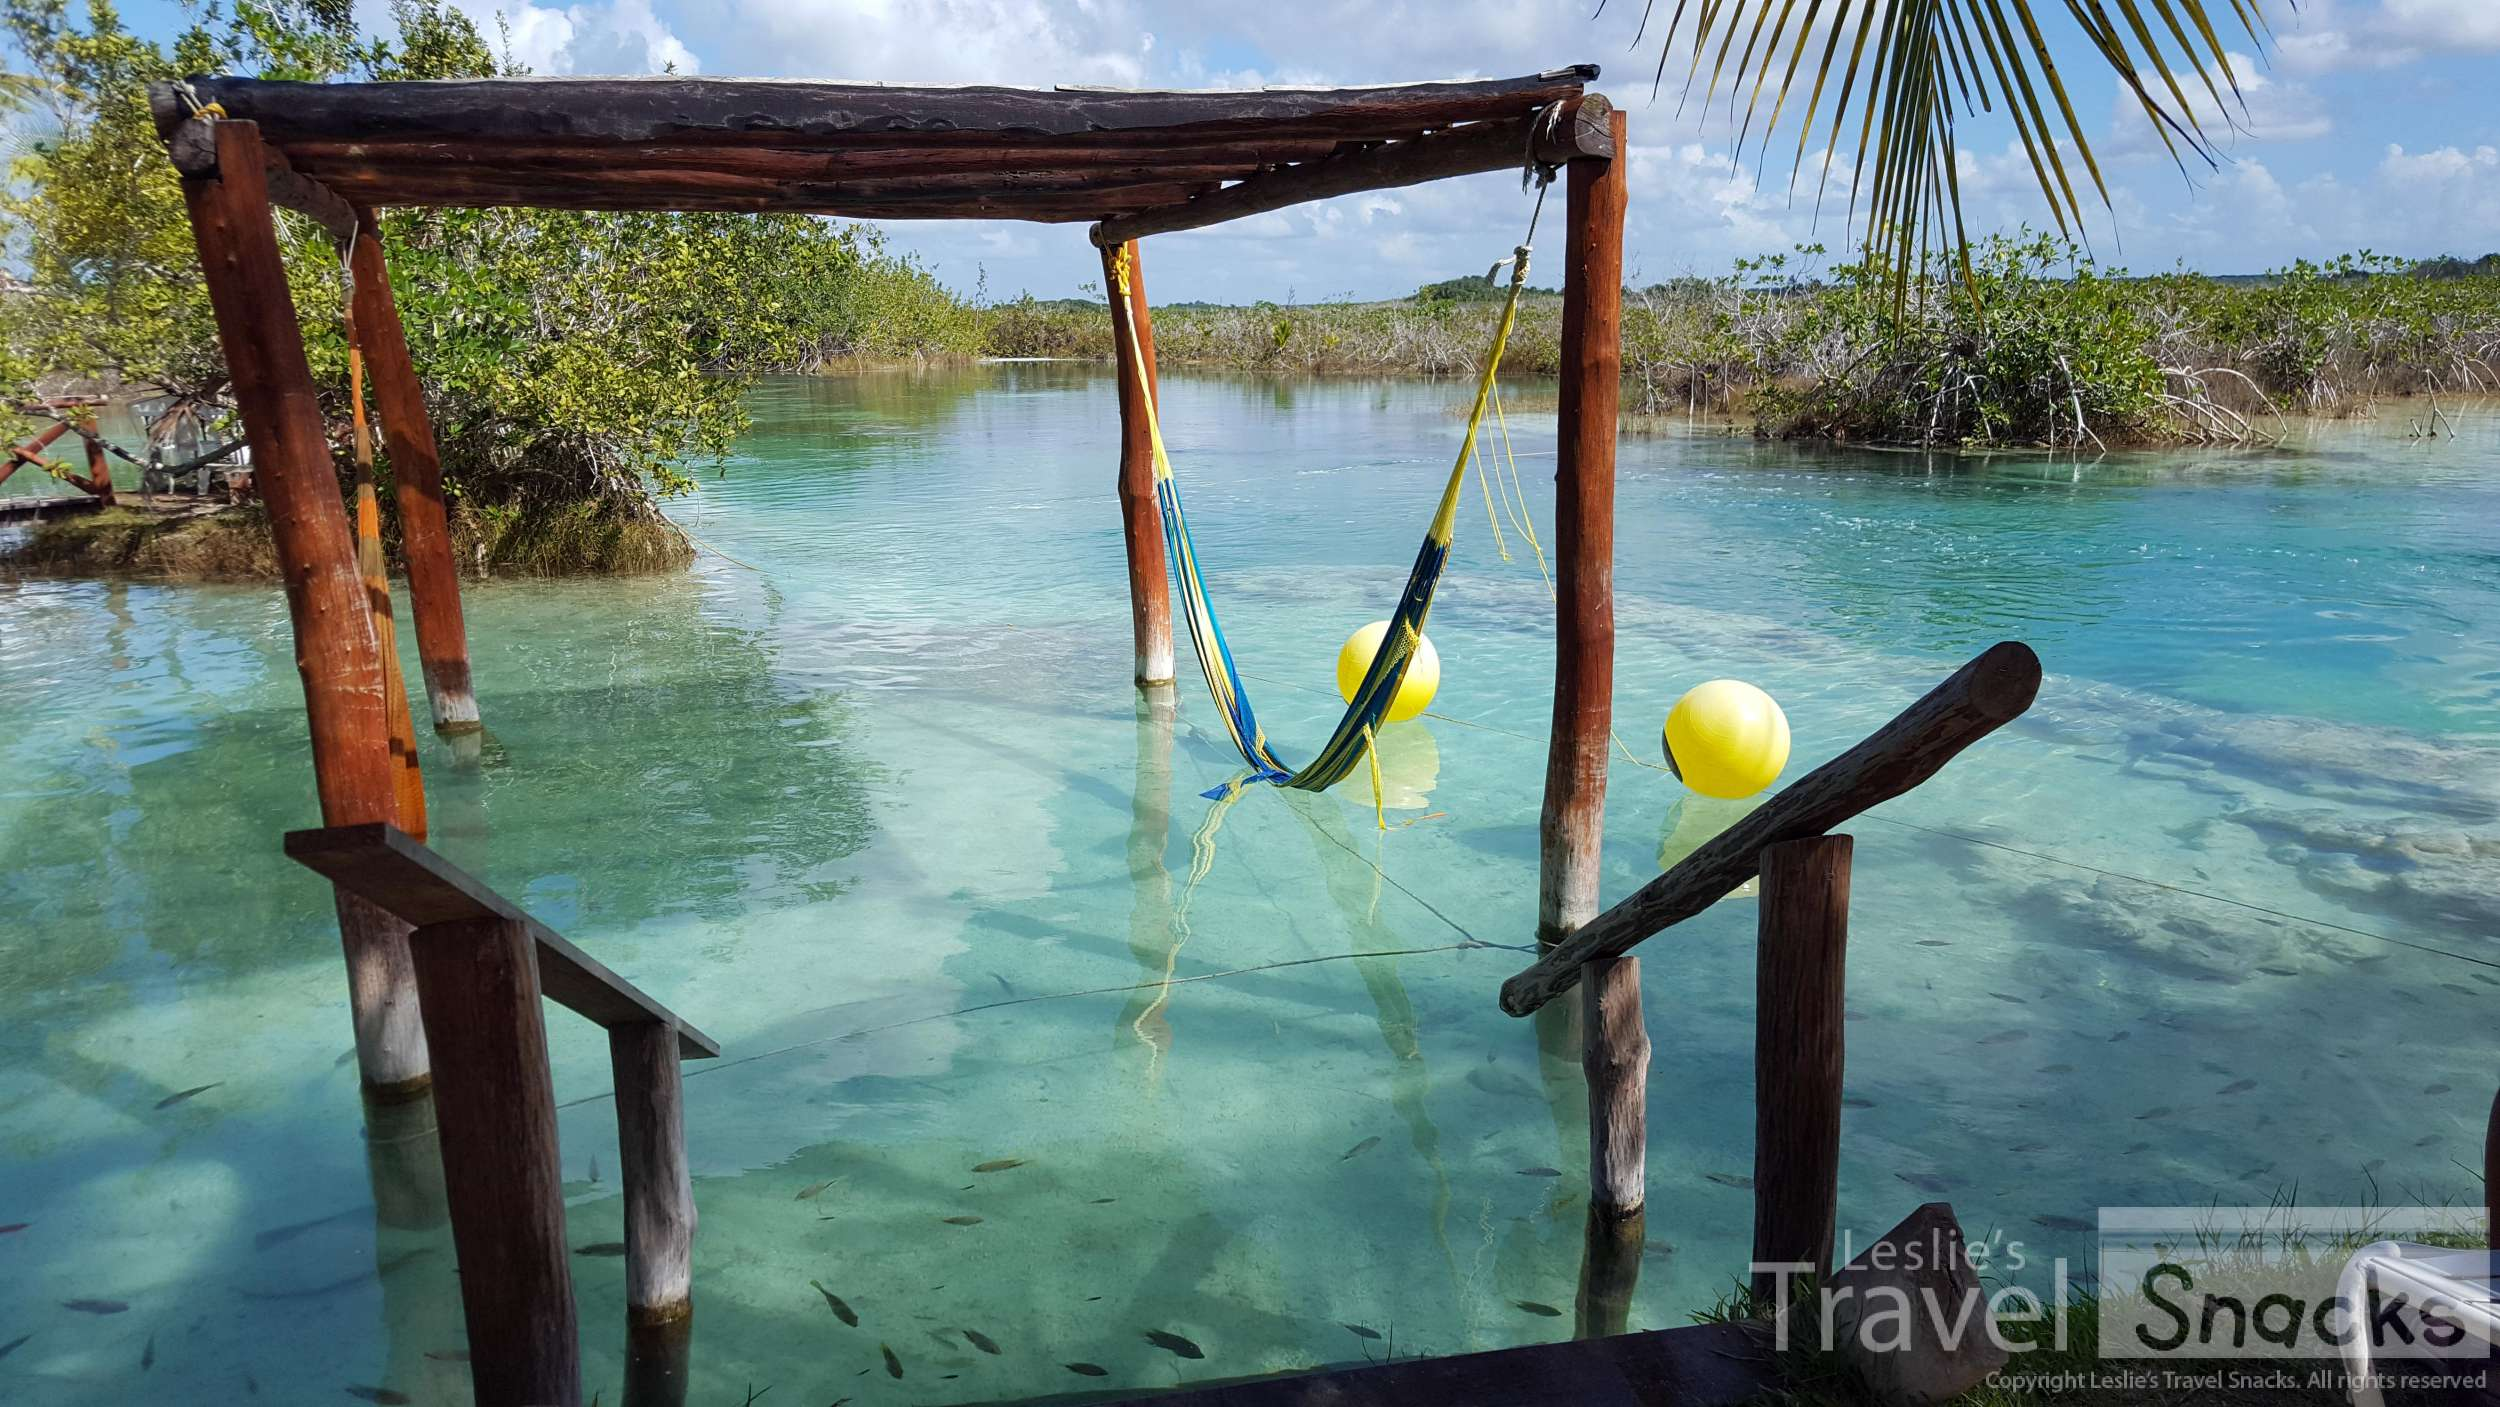 Relax in the hammocks at Los Rápidos, Bacalar, float down the canal, and enjoy some good eats.